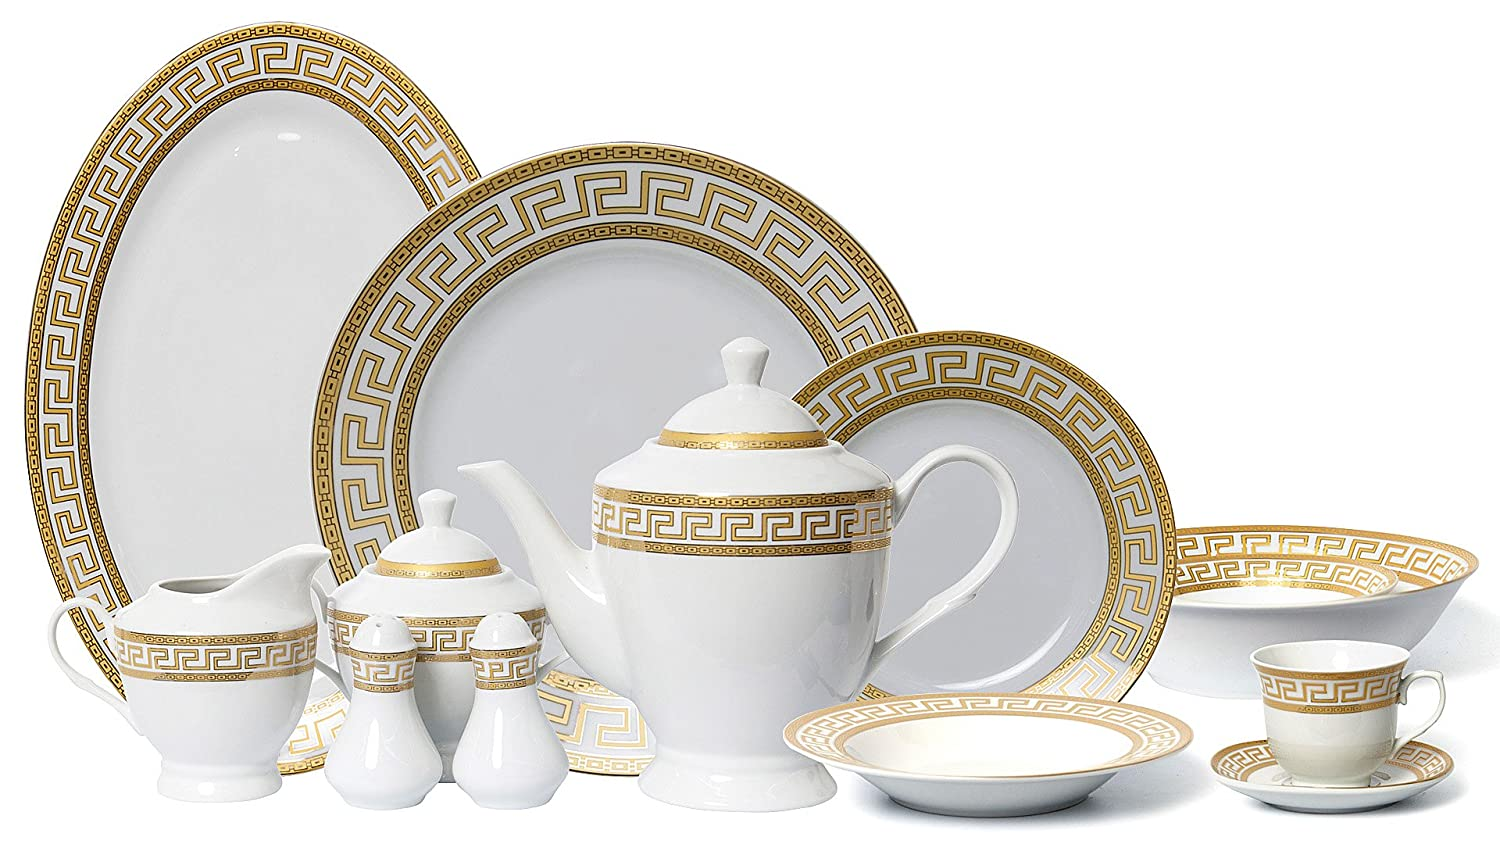 dining tableware sets